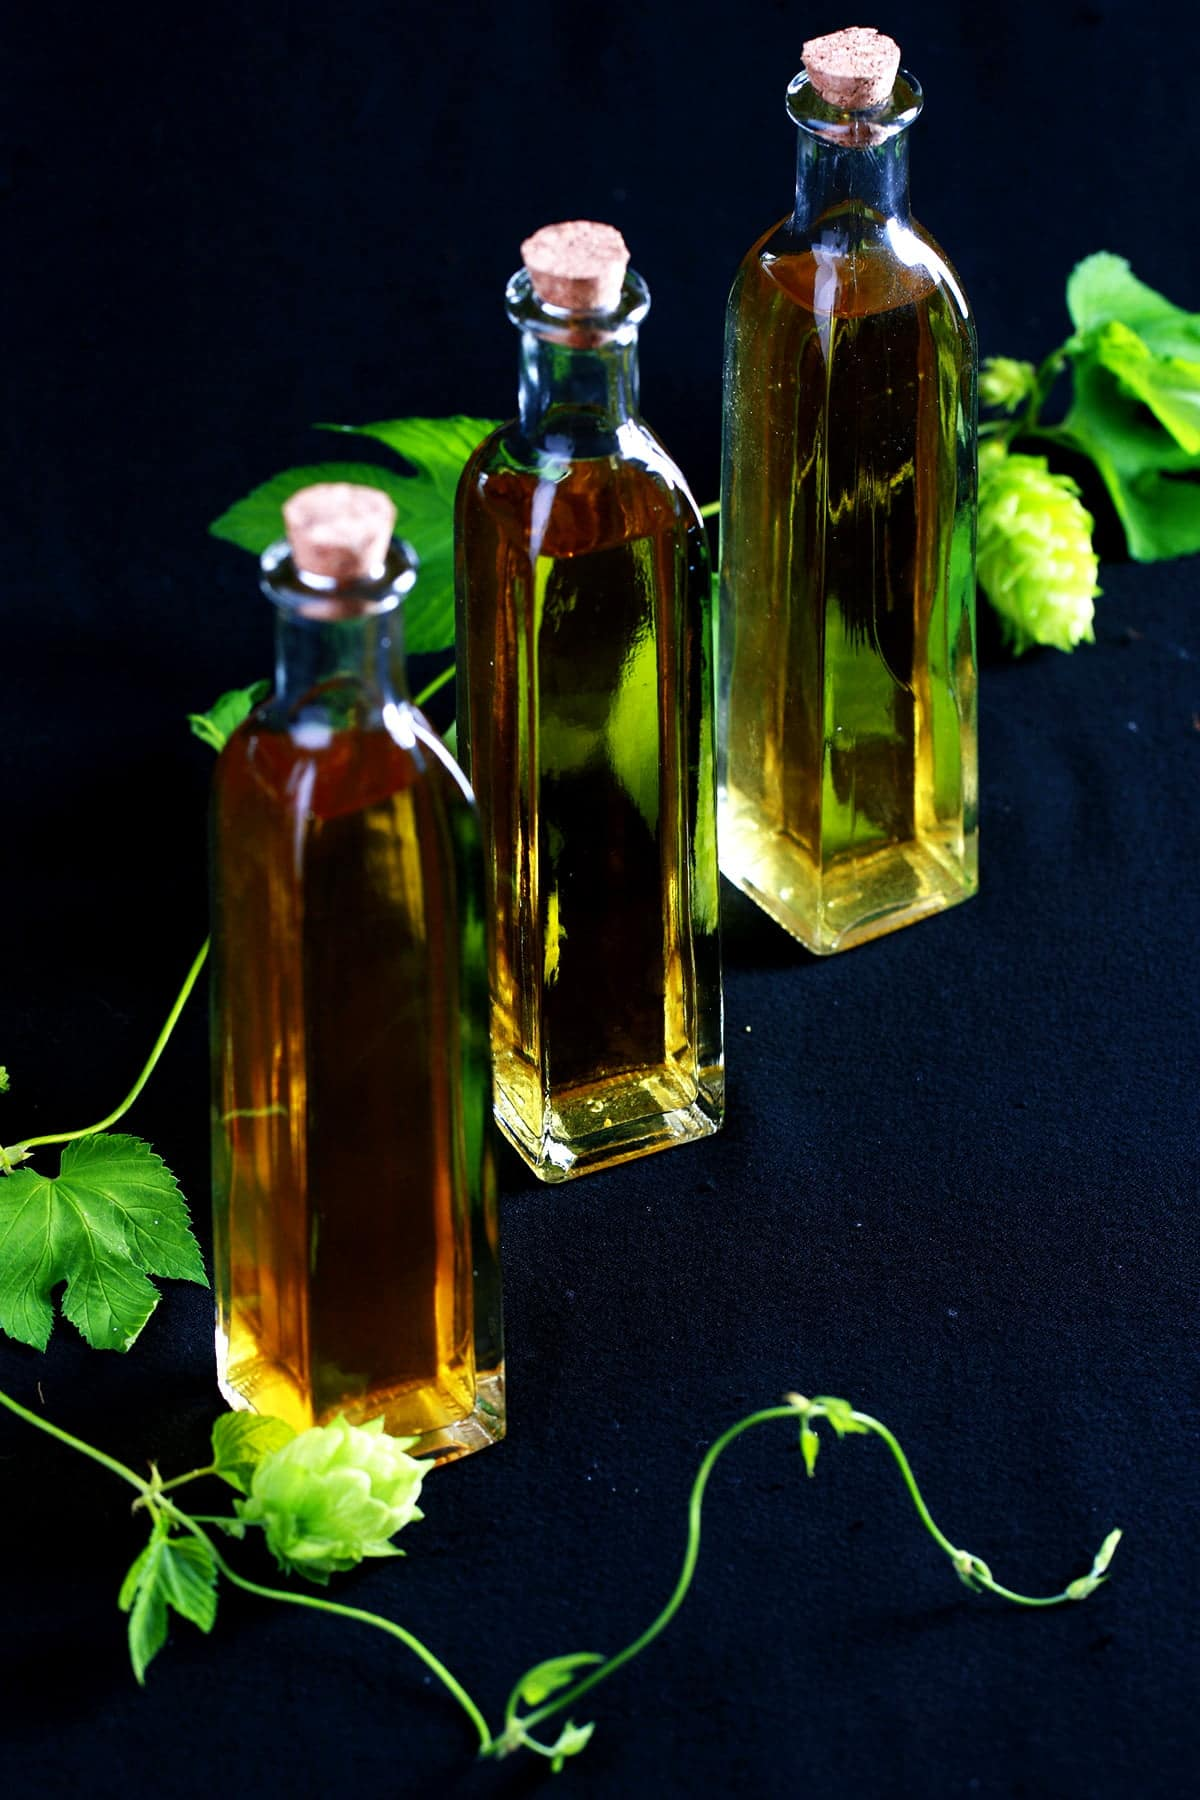 3 tall, skinny glass bottles of homemade hop extract, along with a piece of hop bine.